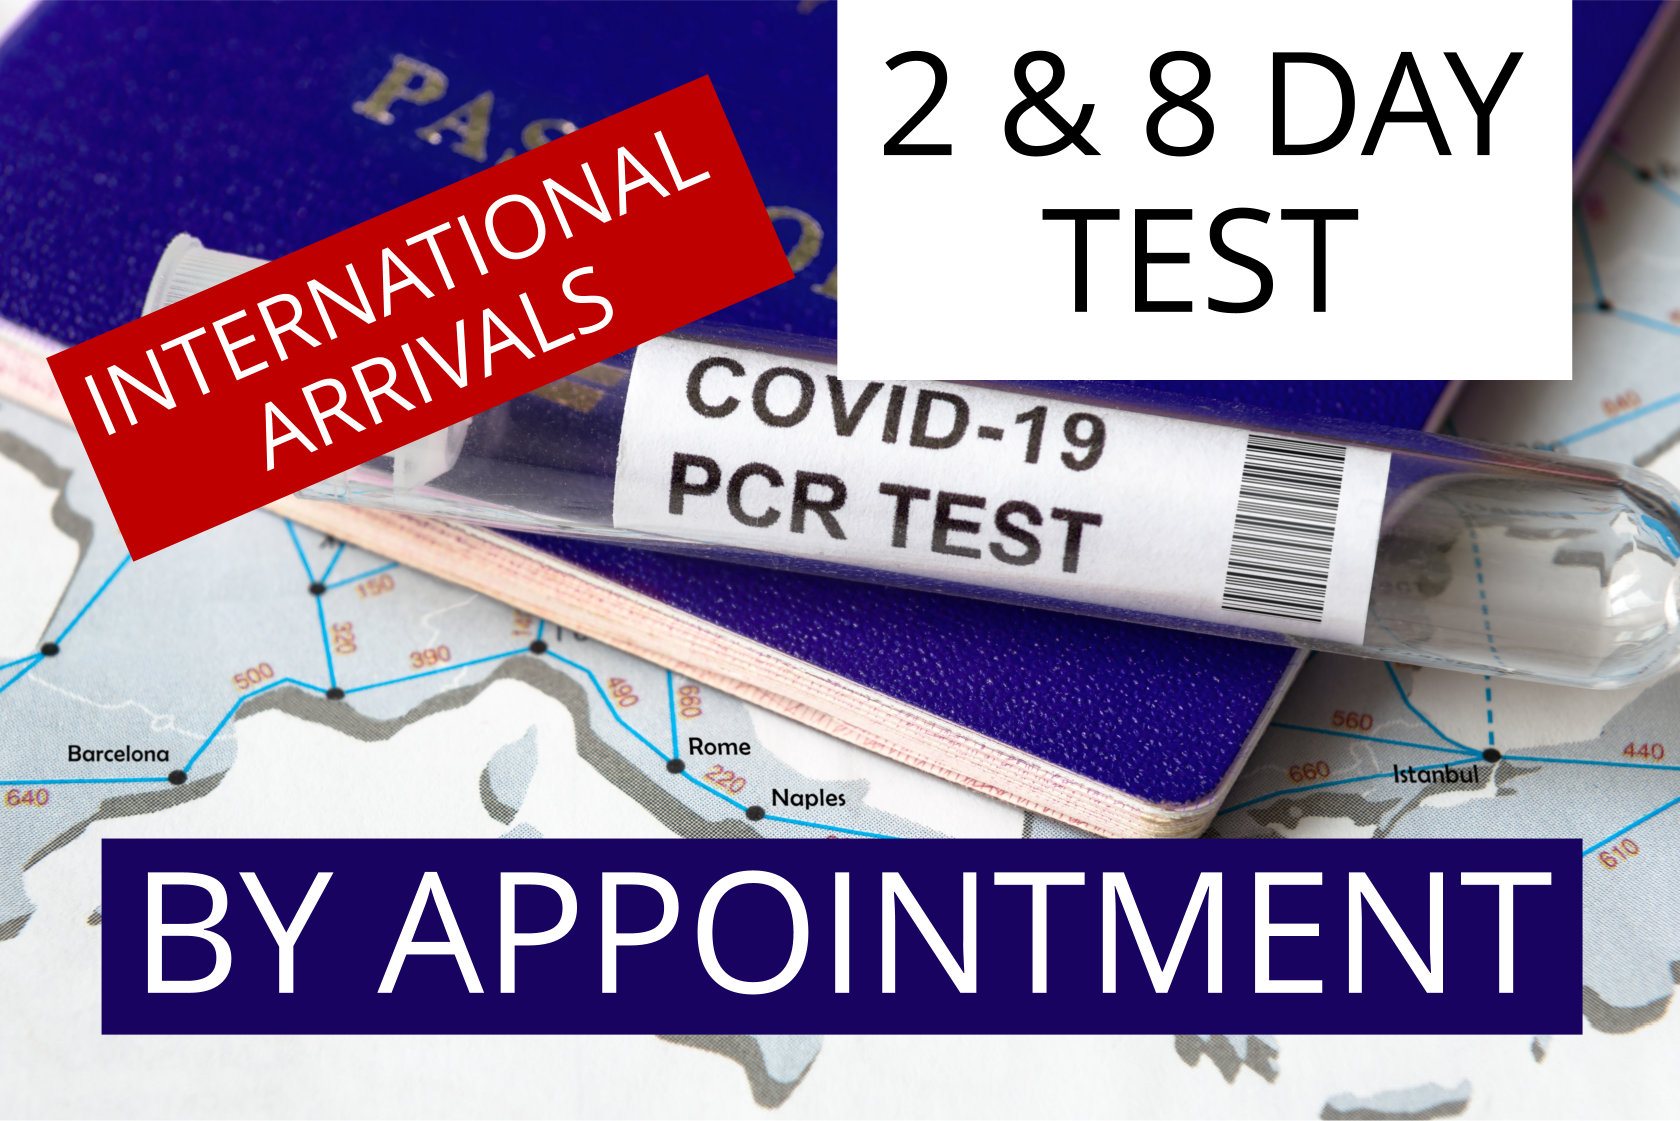 COVID-19 Travel Testing Package, Day 2 & 8 after International Arrival